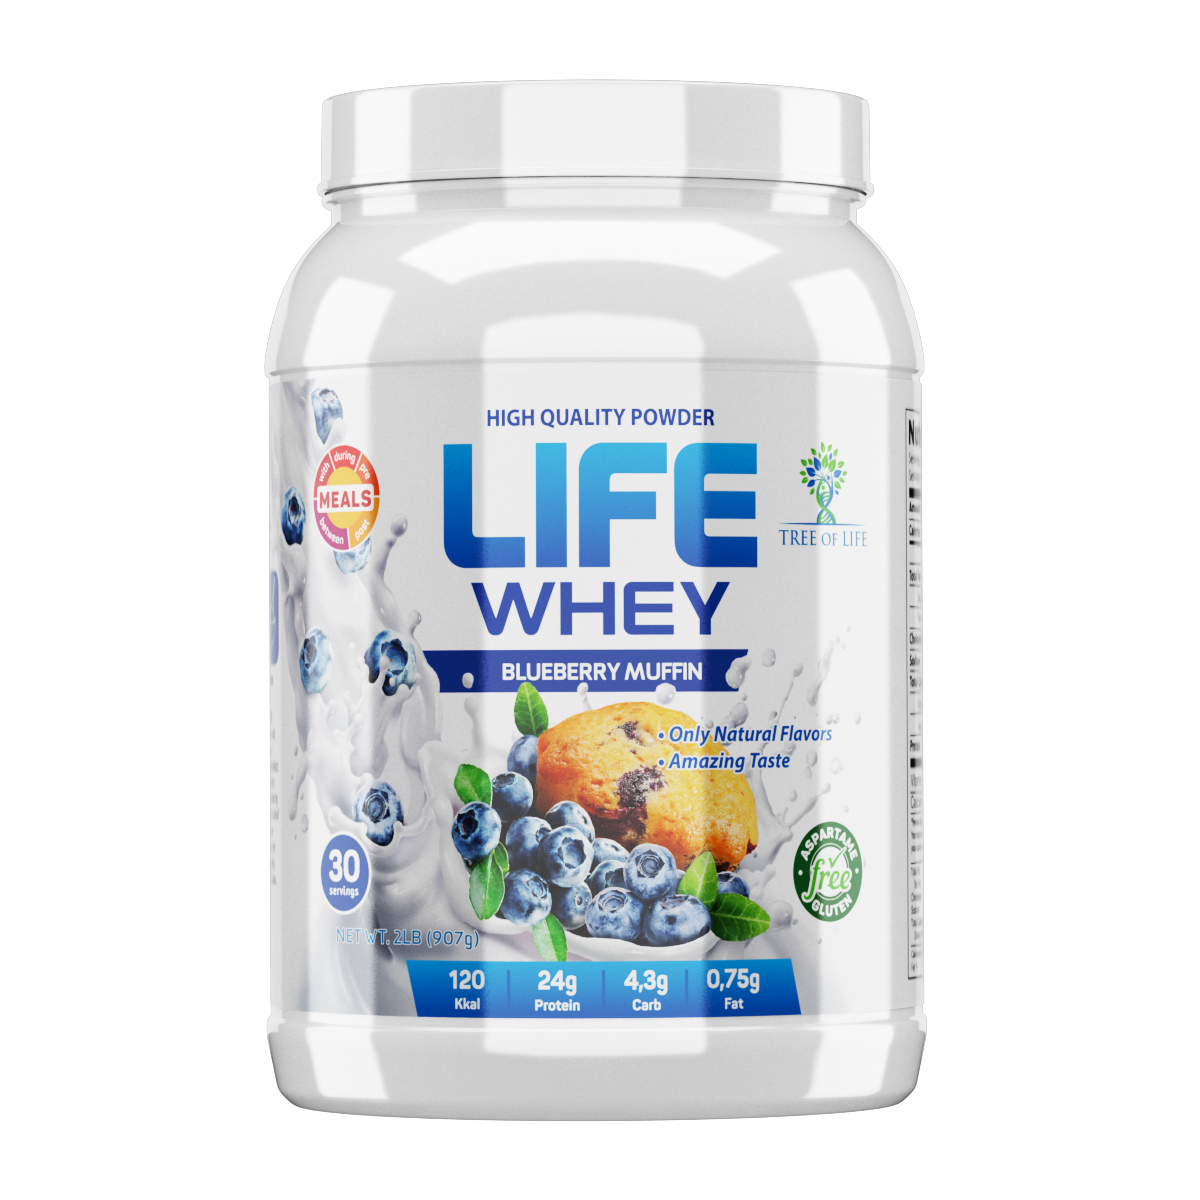 Life Whey 2lb Blueberry muffin